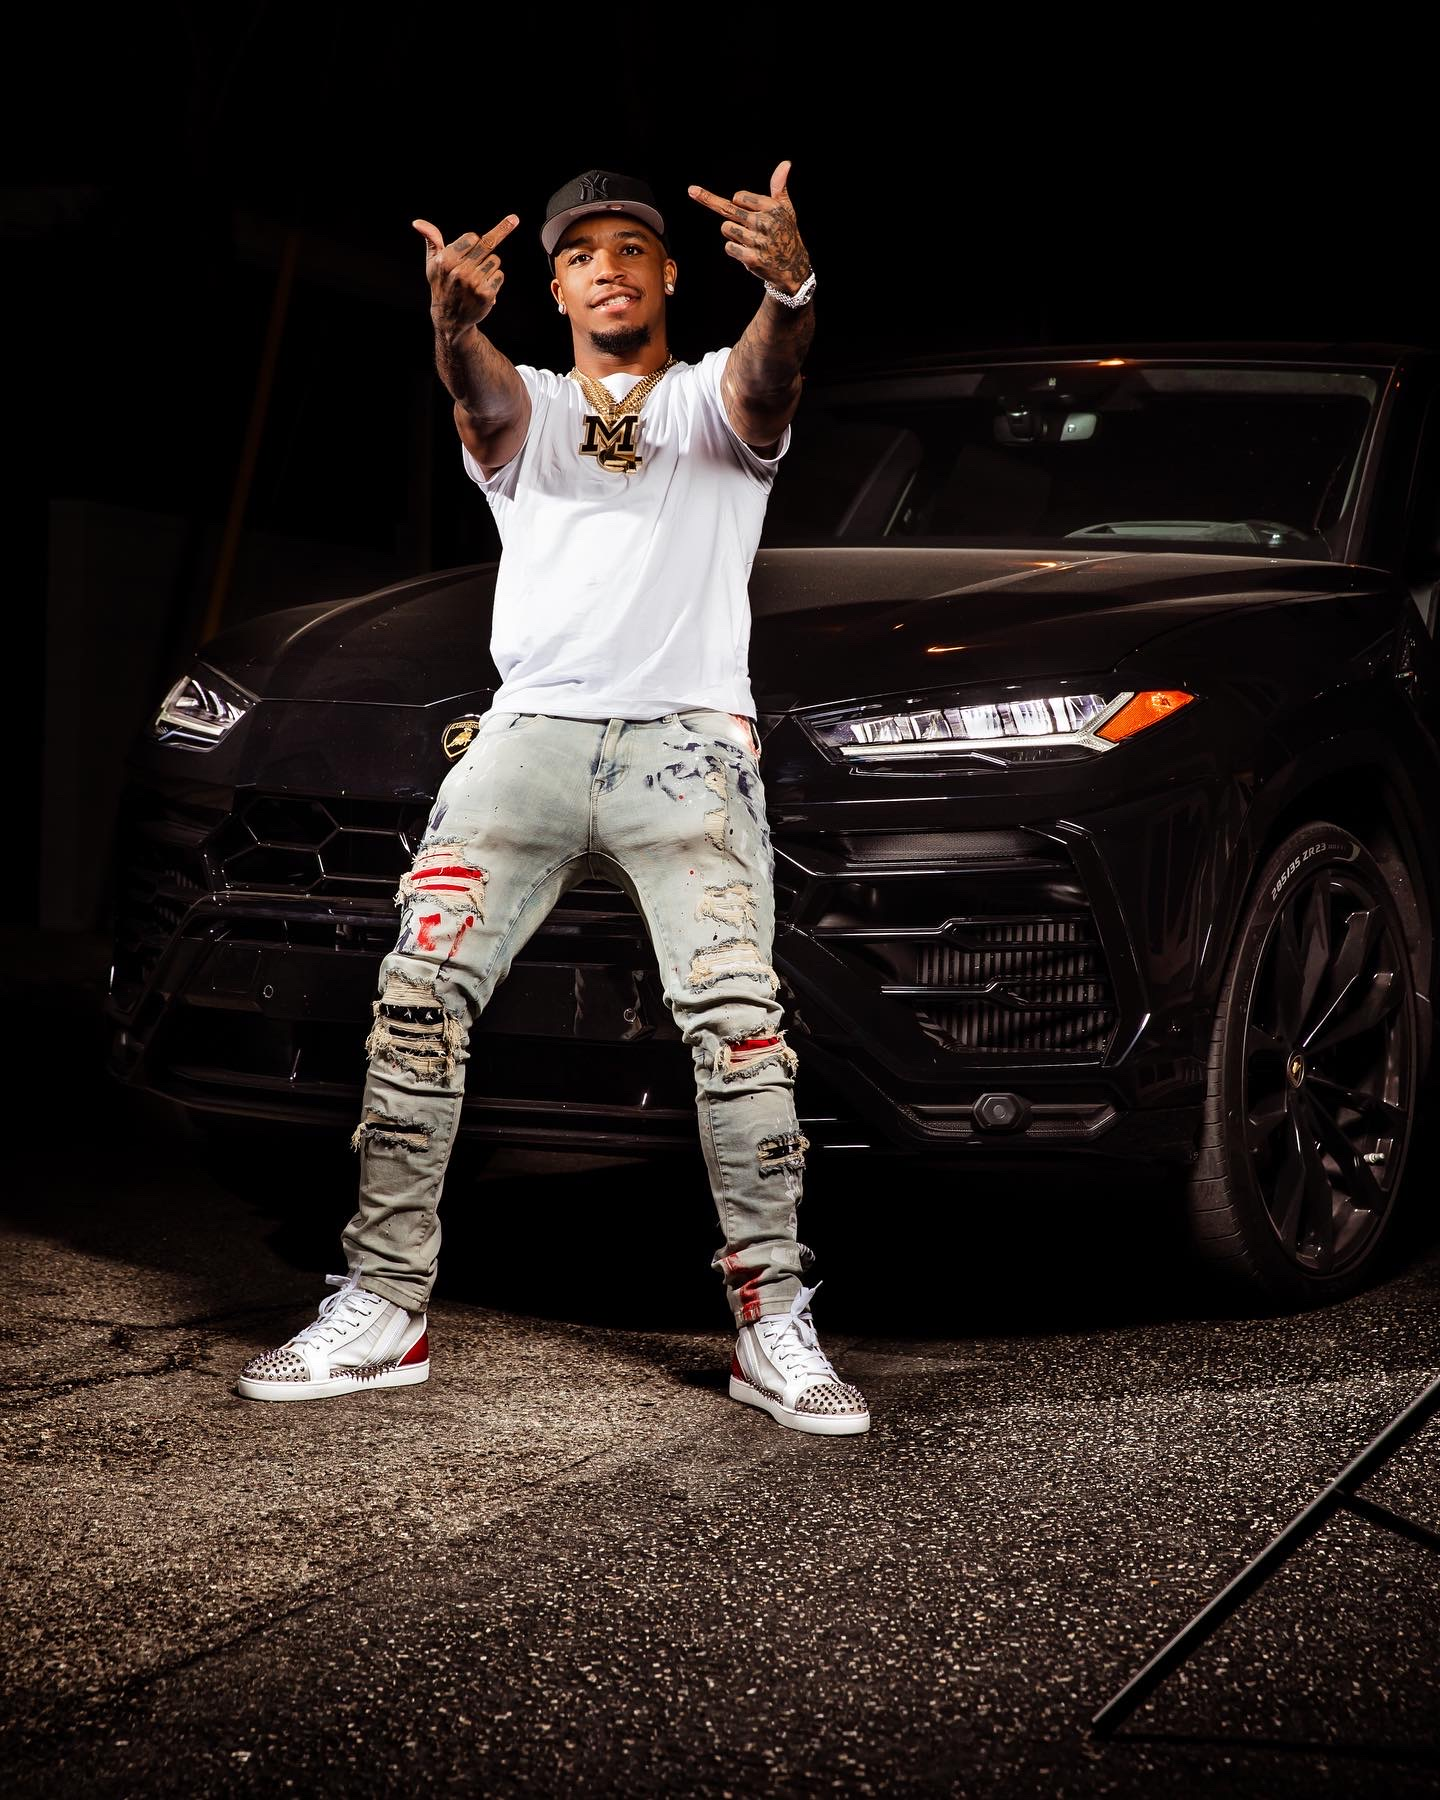 BROKETILFRIDAY (@BrokeTilFriday4) Discusses New Single Florida Love, Passion for Music & More [Interview]